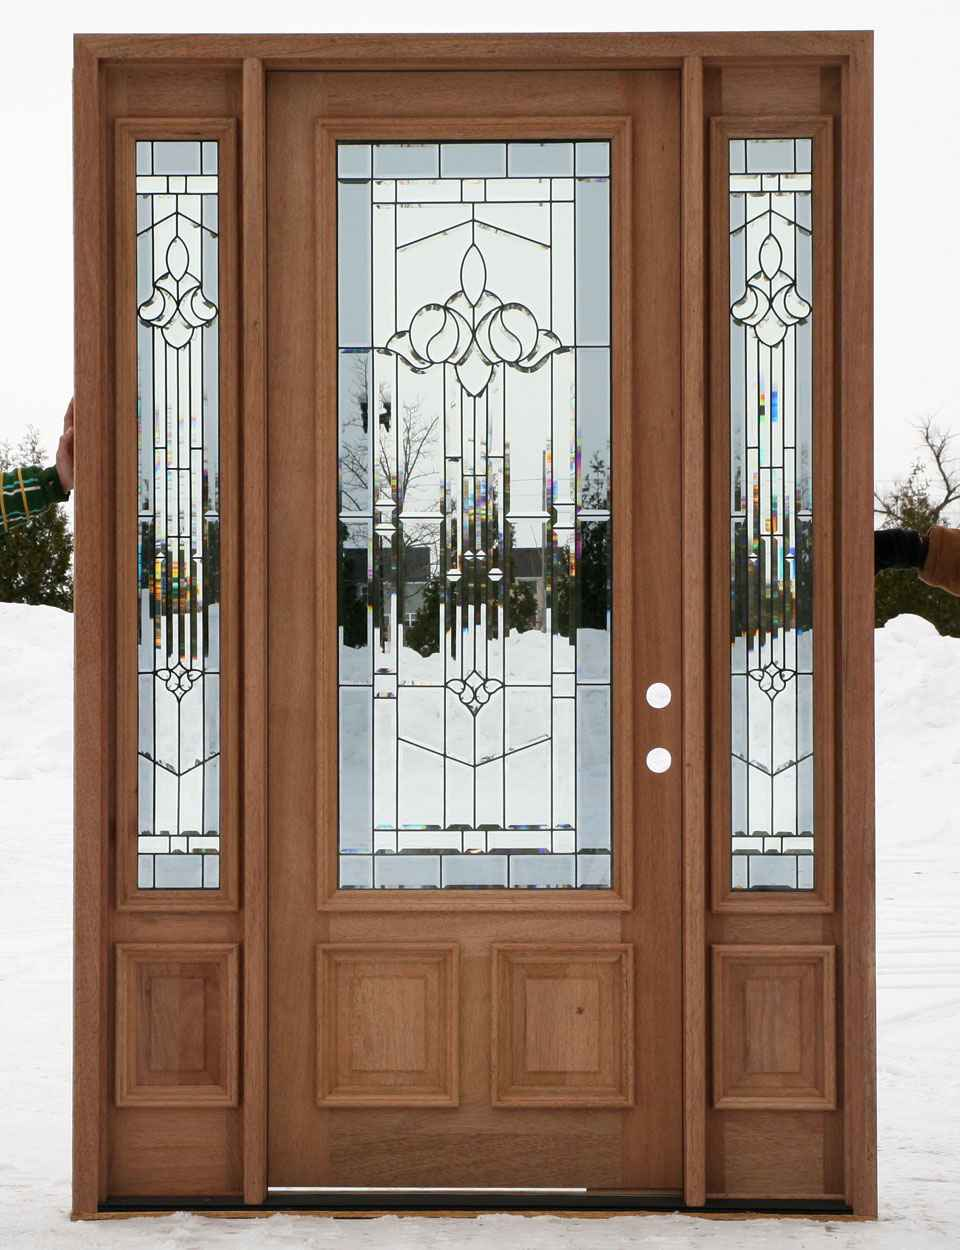 Cheap entry doors with sidelights feel the home for Home entry doors for sale